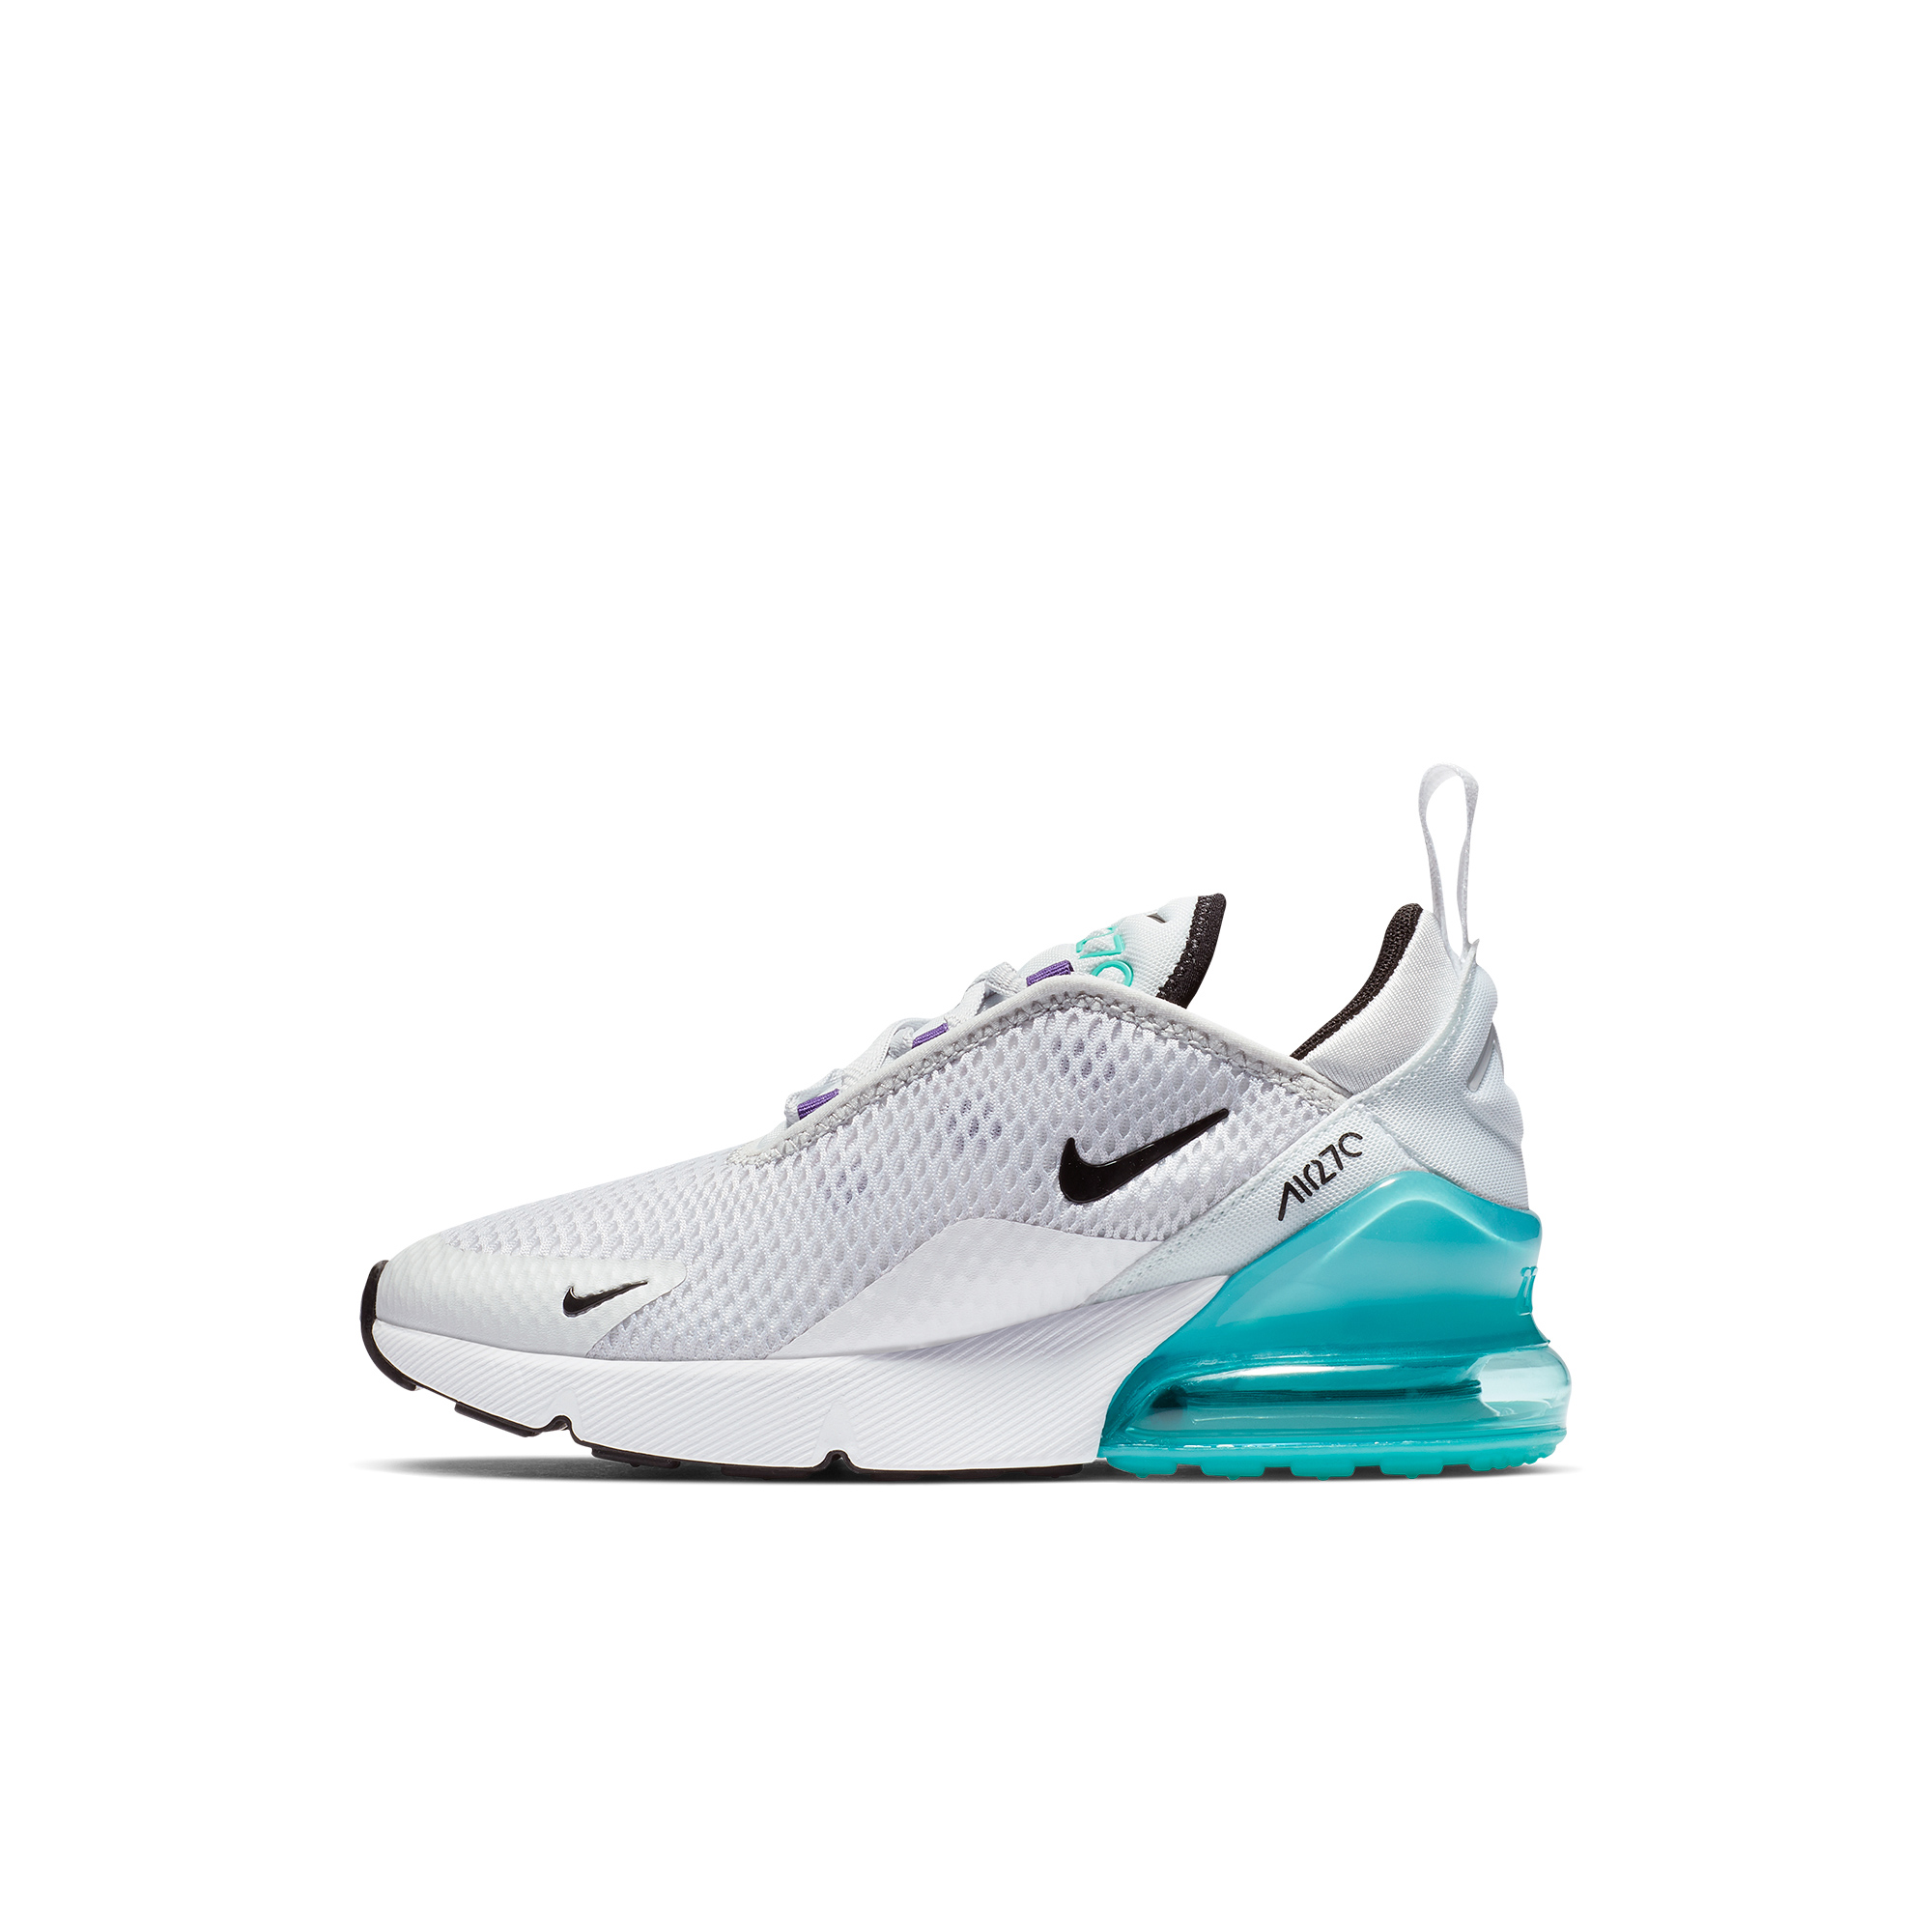 NIKE AIR MAX 270 enfants Original enfants chaussures de course Sports confortables en plein AIR maille baskets #943345 - 3